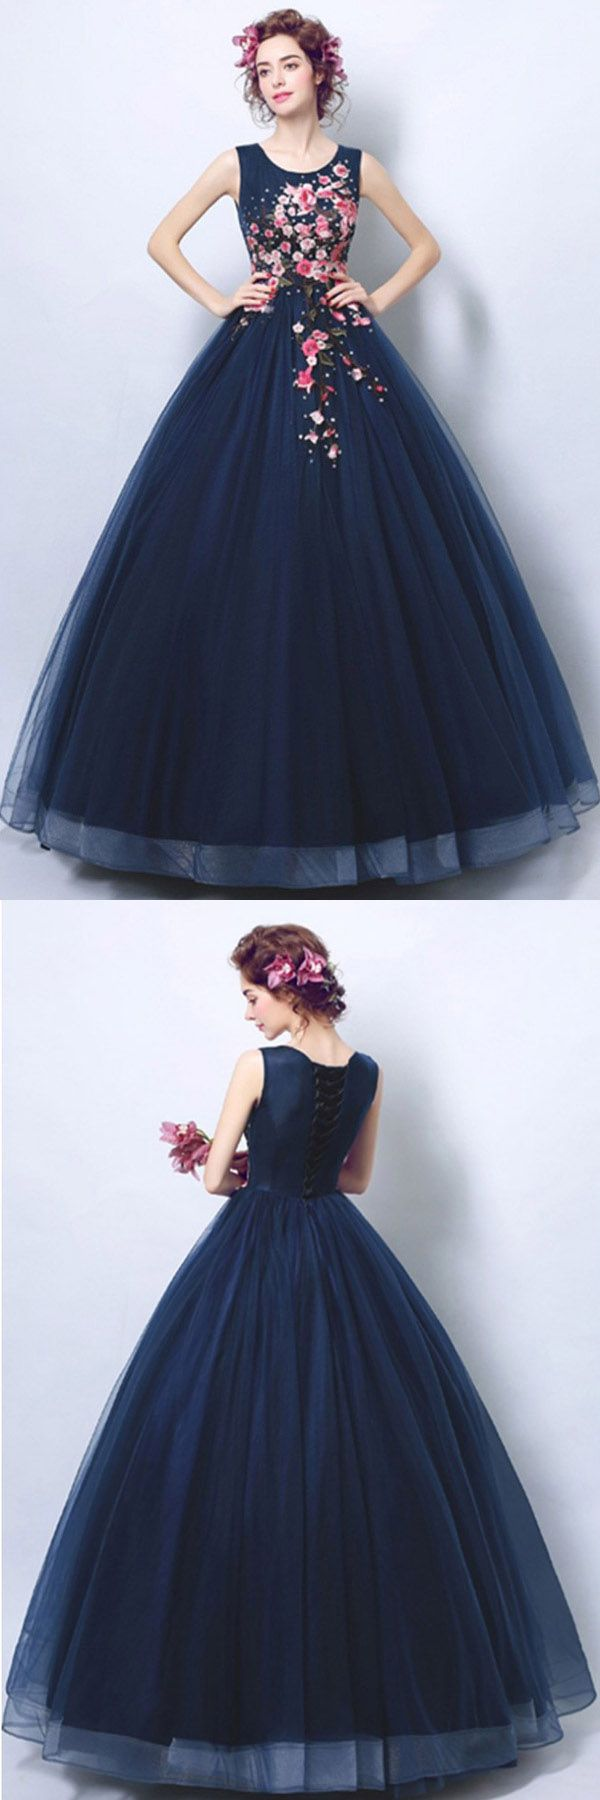 Dark navy blue ball gown formal prom dress with applique pg in